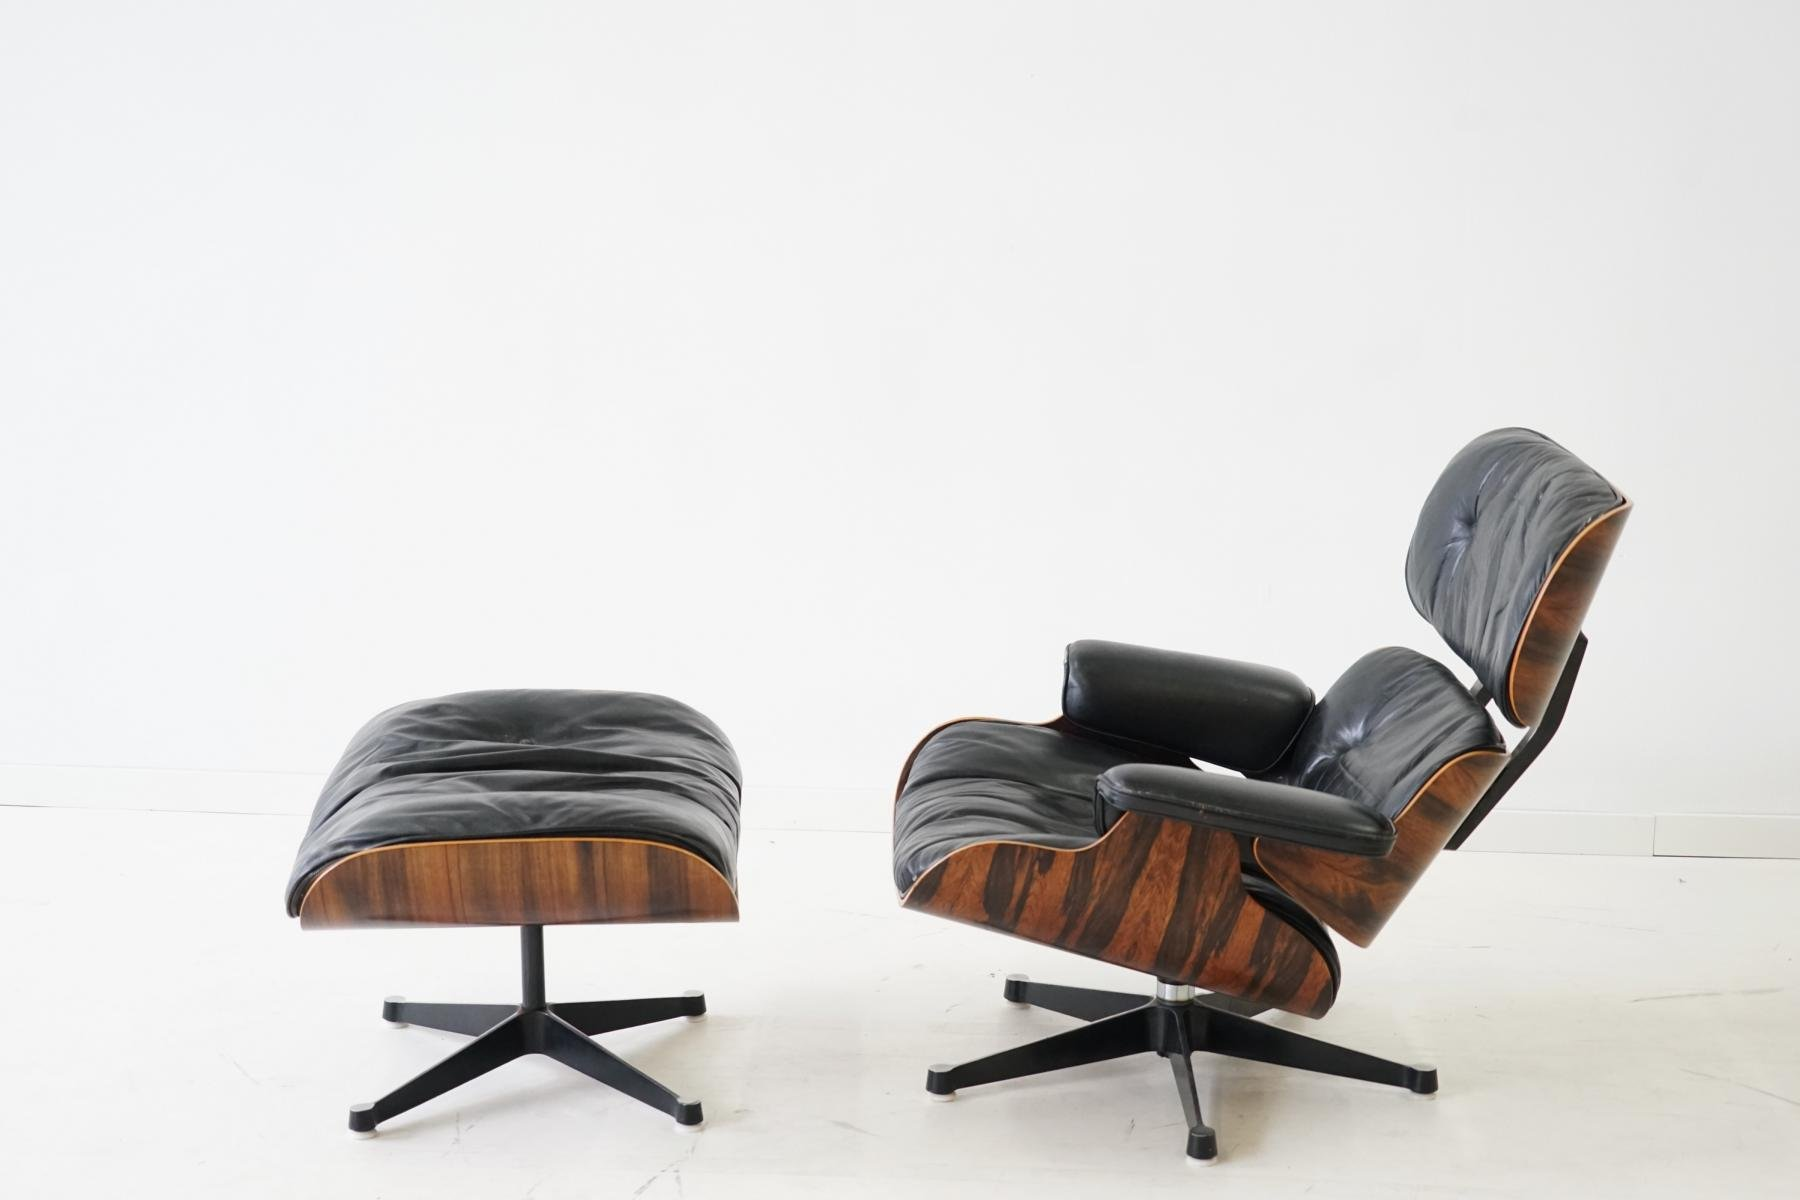 Lounge Chair & Ottoman by Charles and Ray Eames for Herman Miller